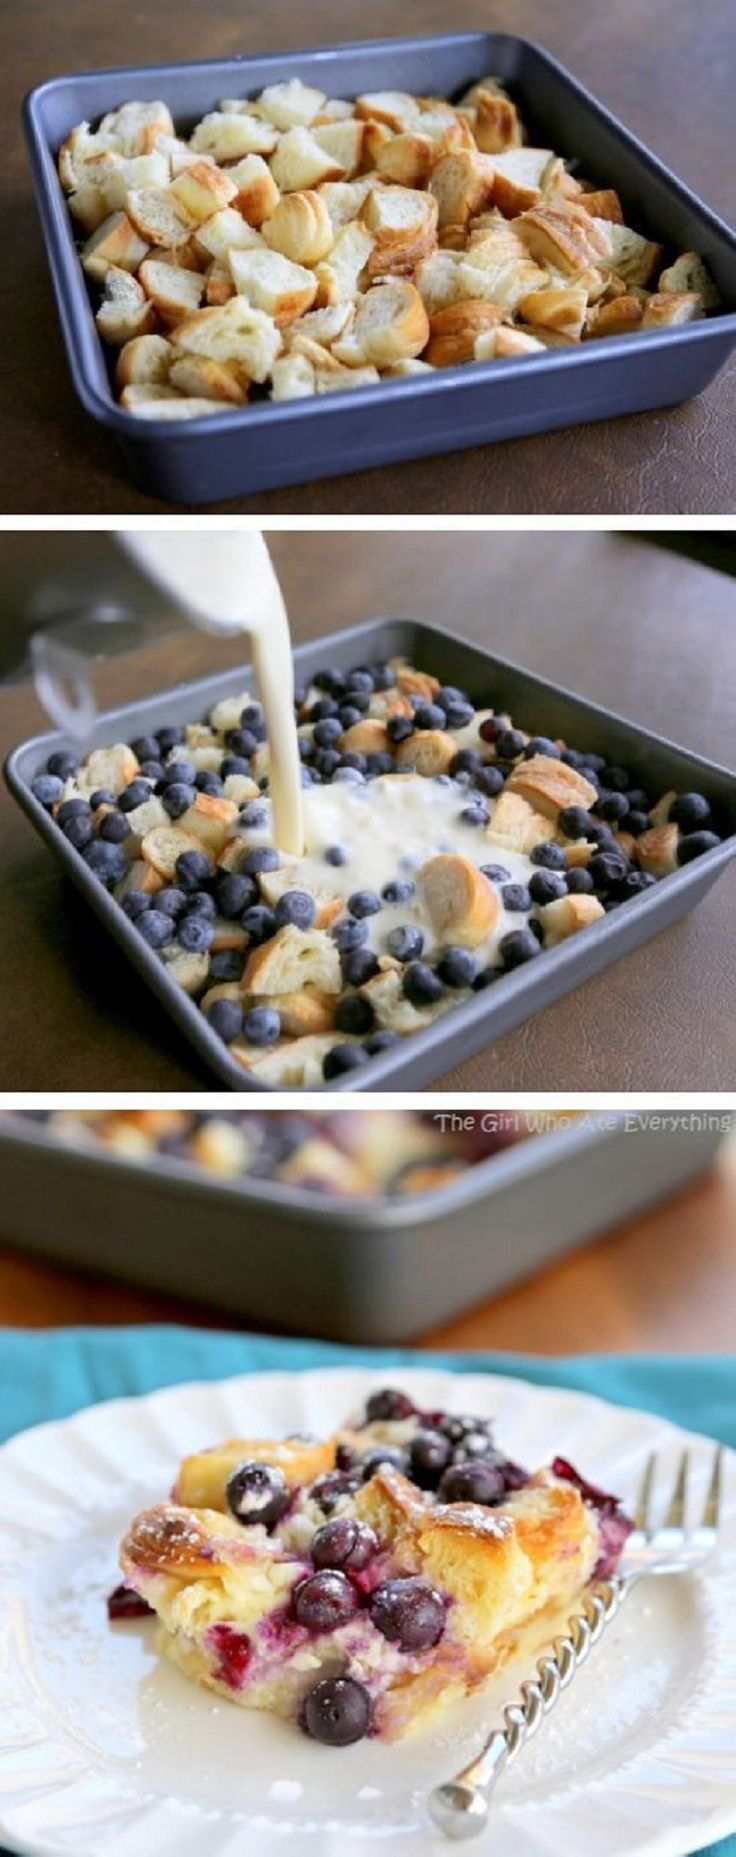 Blueberry Croissant Puff - 15 Sticky-Sweet Baked Fruit Ideas   GleamItUp